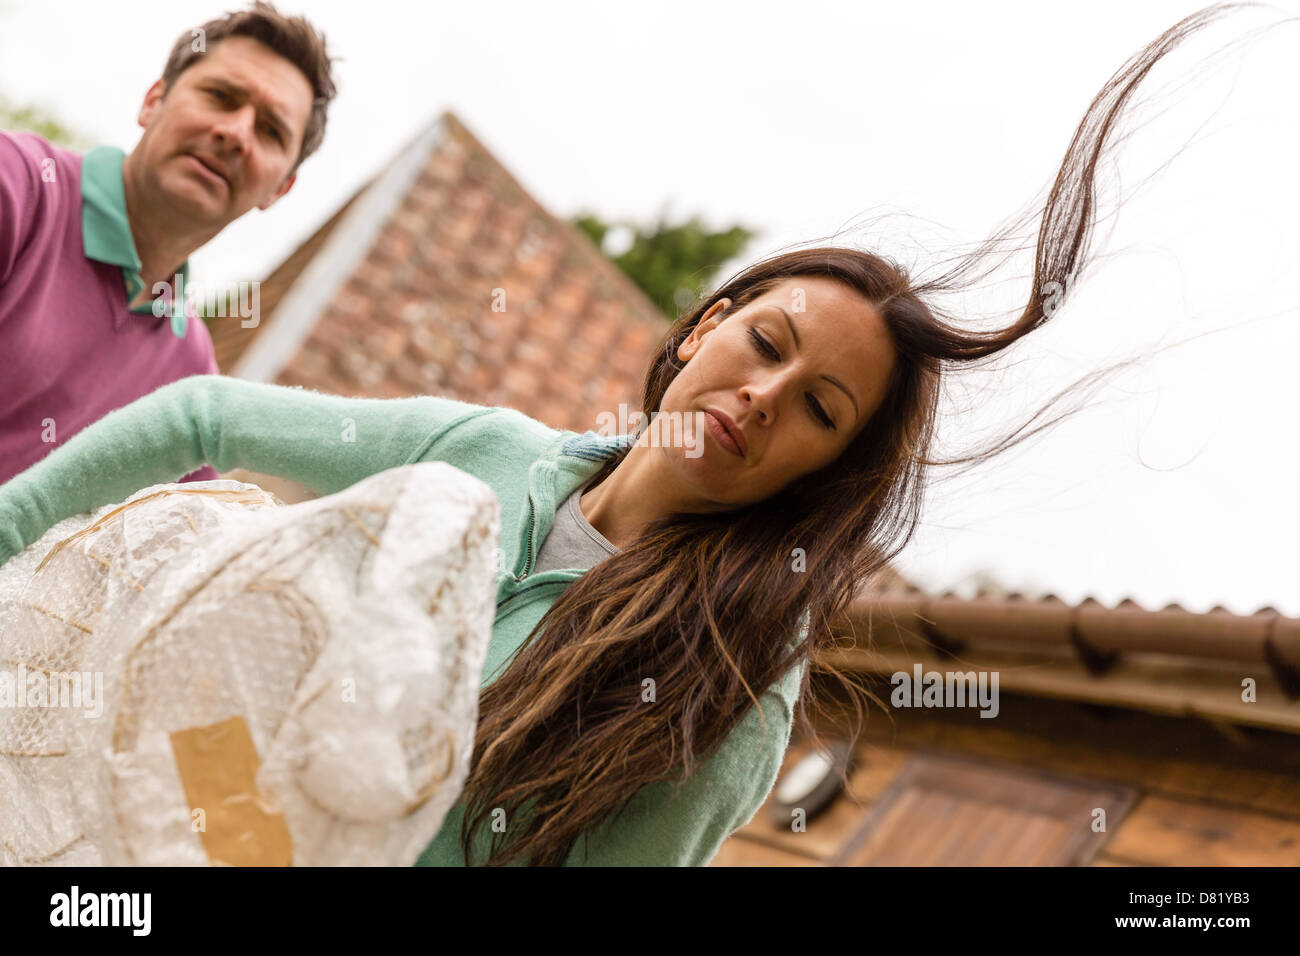 Man and woman carrying wrapped item - Stock Image